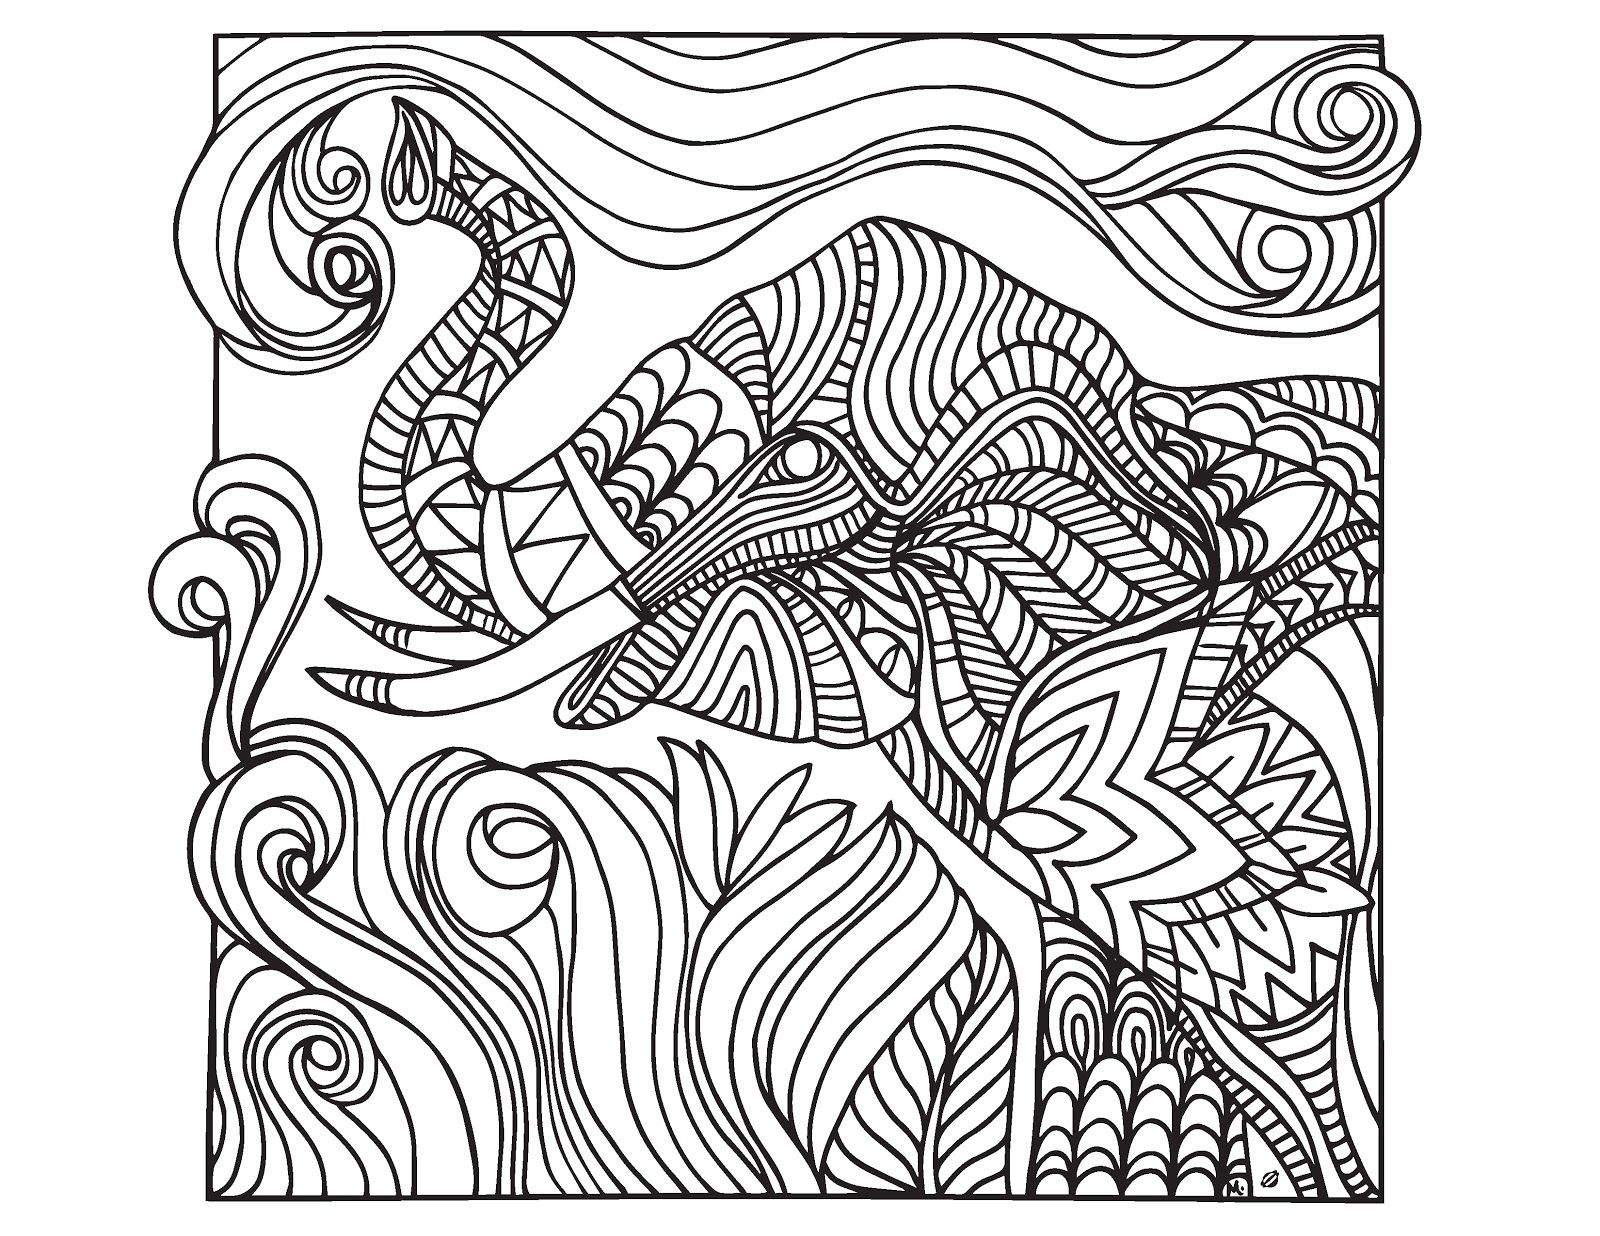 Complicated Elephant Coloring Pages. Difficult Abstract Elephant Coloring Pages for Adults  Tone LostBumblebee 2015 MDBN Grown Up Colouring Sheets